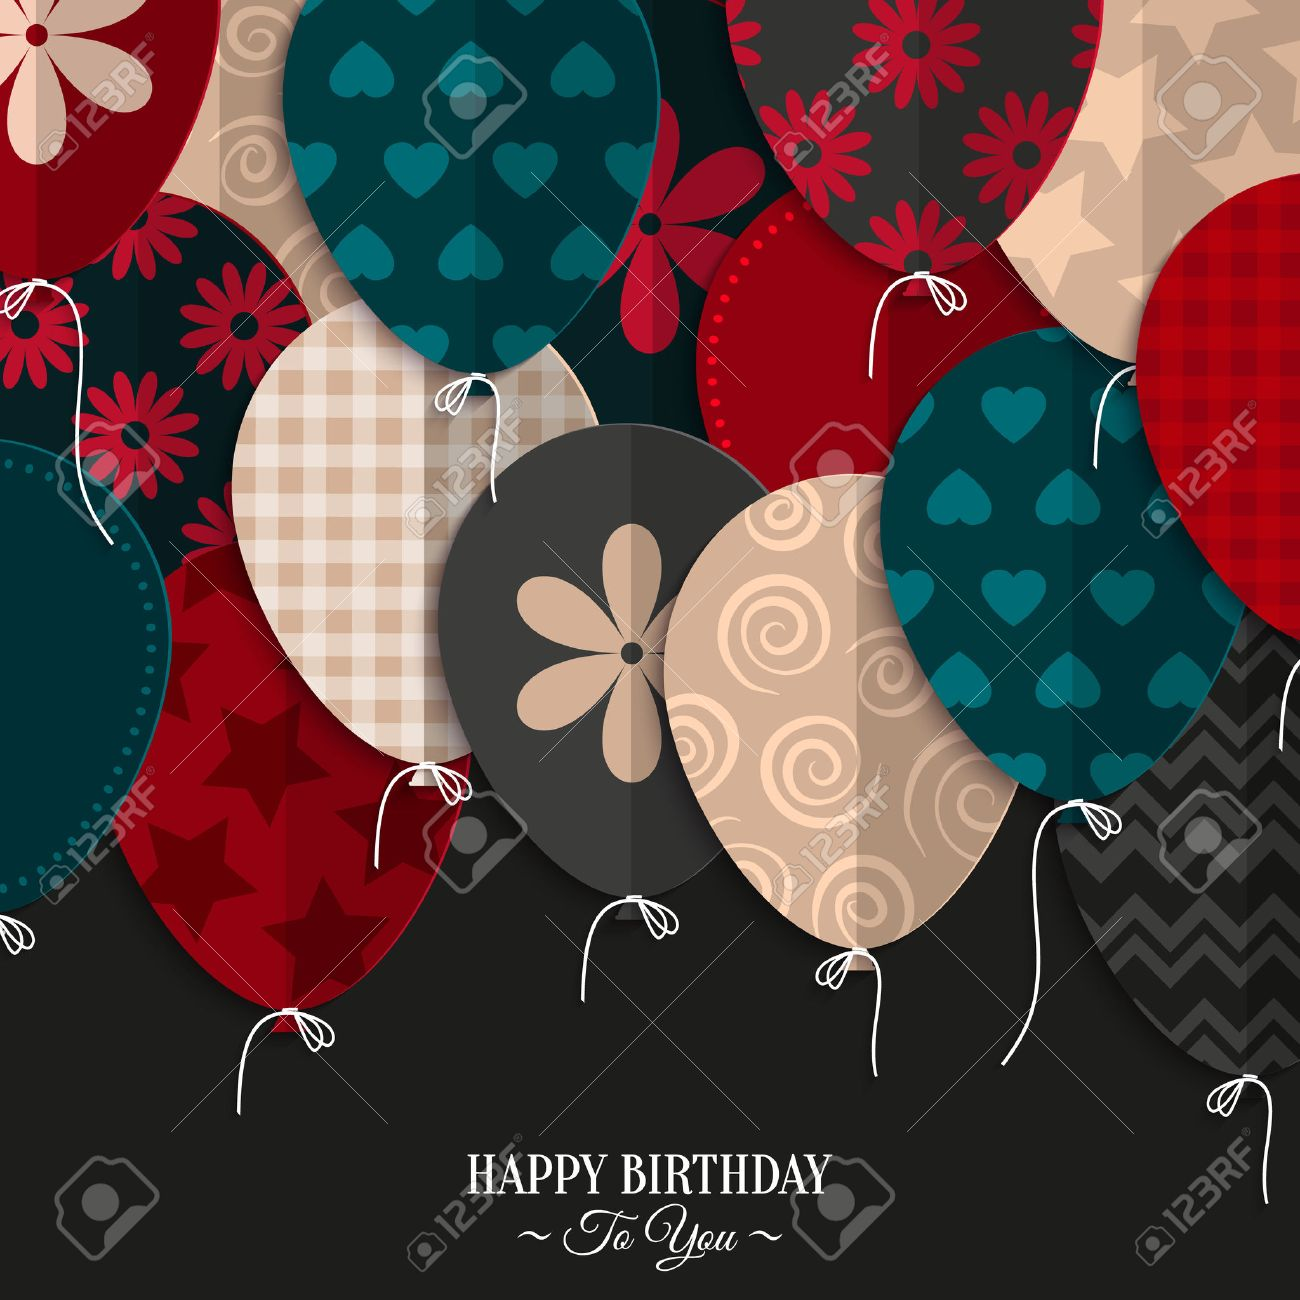 Vector Birthday Card With Paper Balloons And Birthday Text – Birthday Card with Pictures